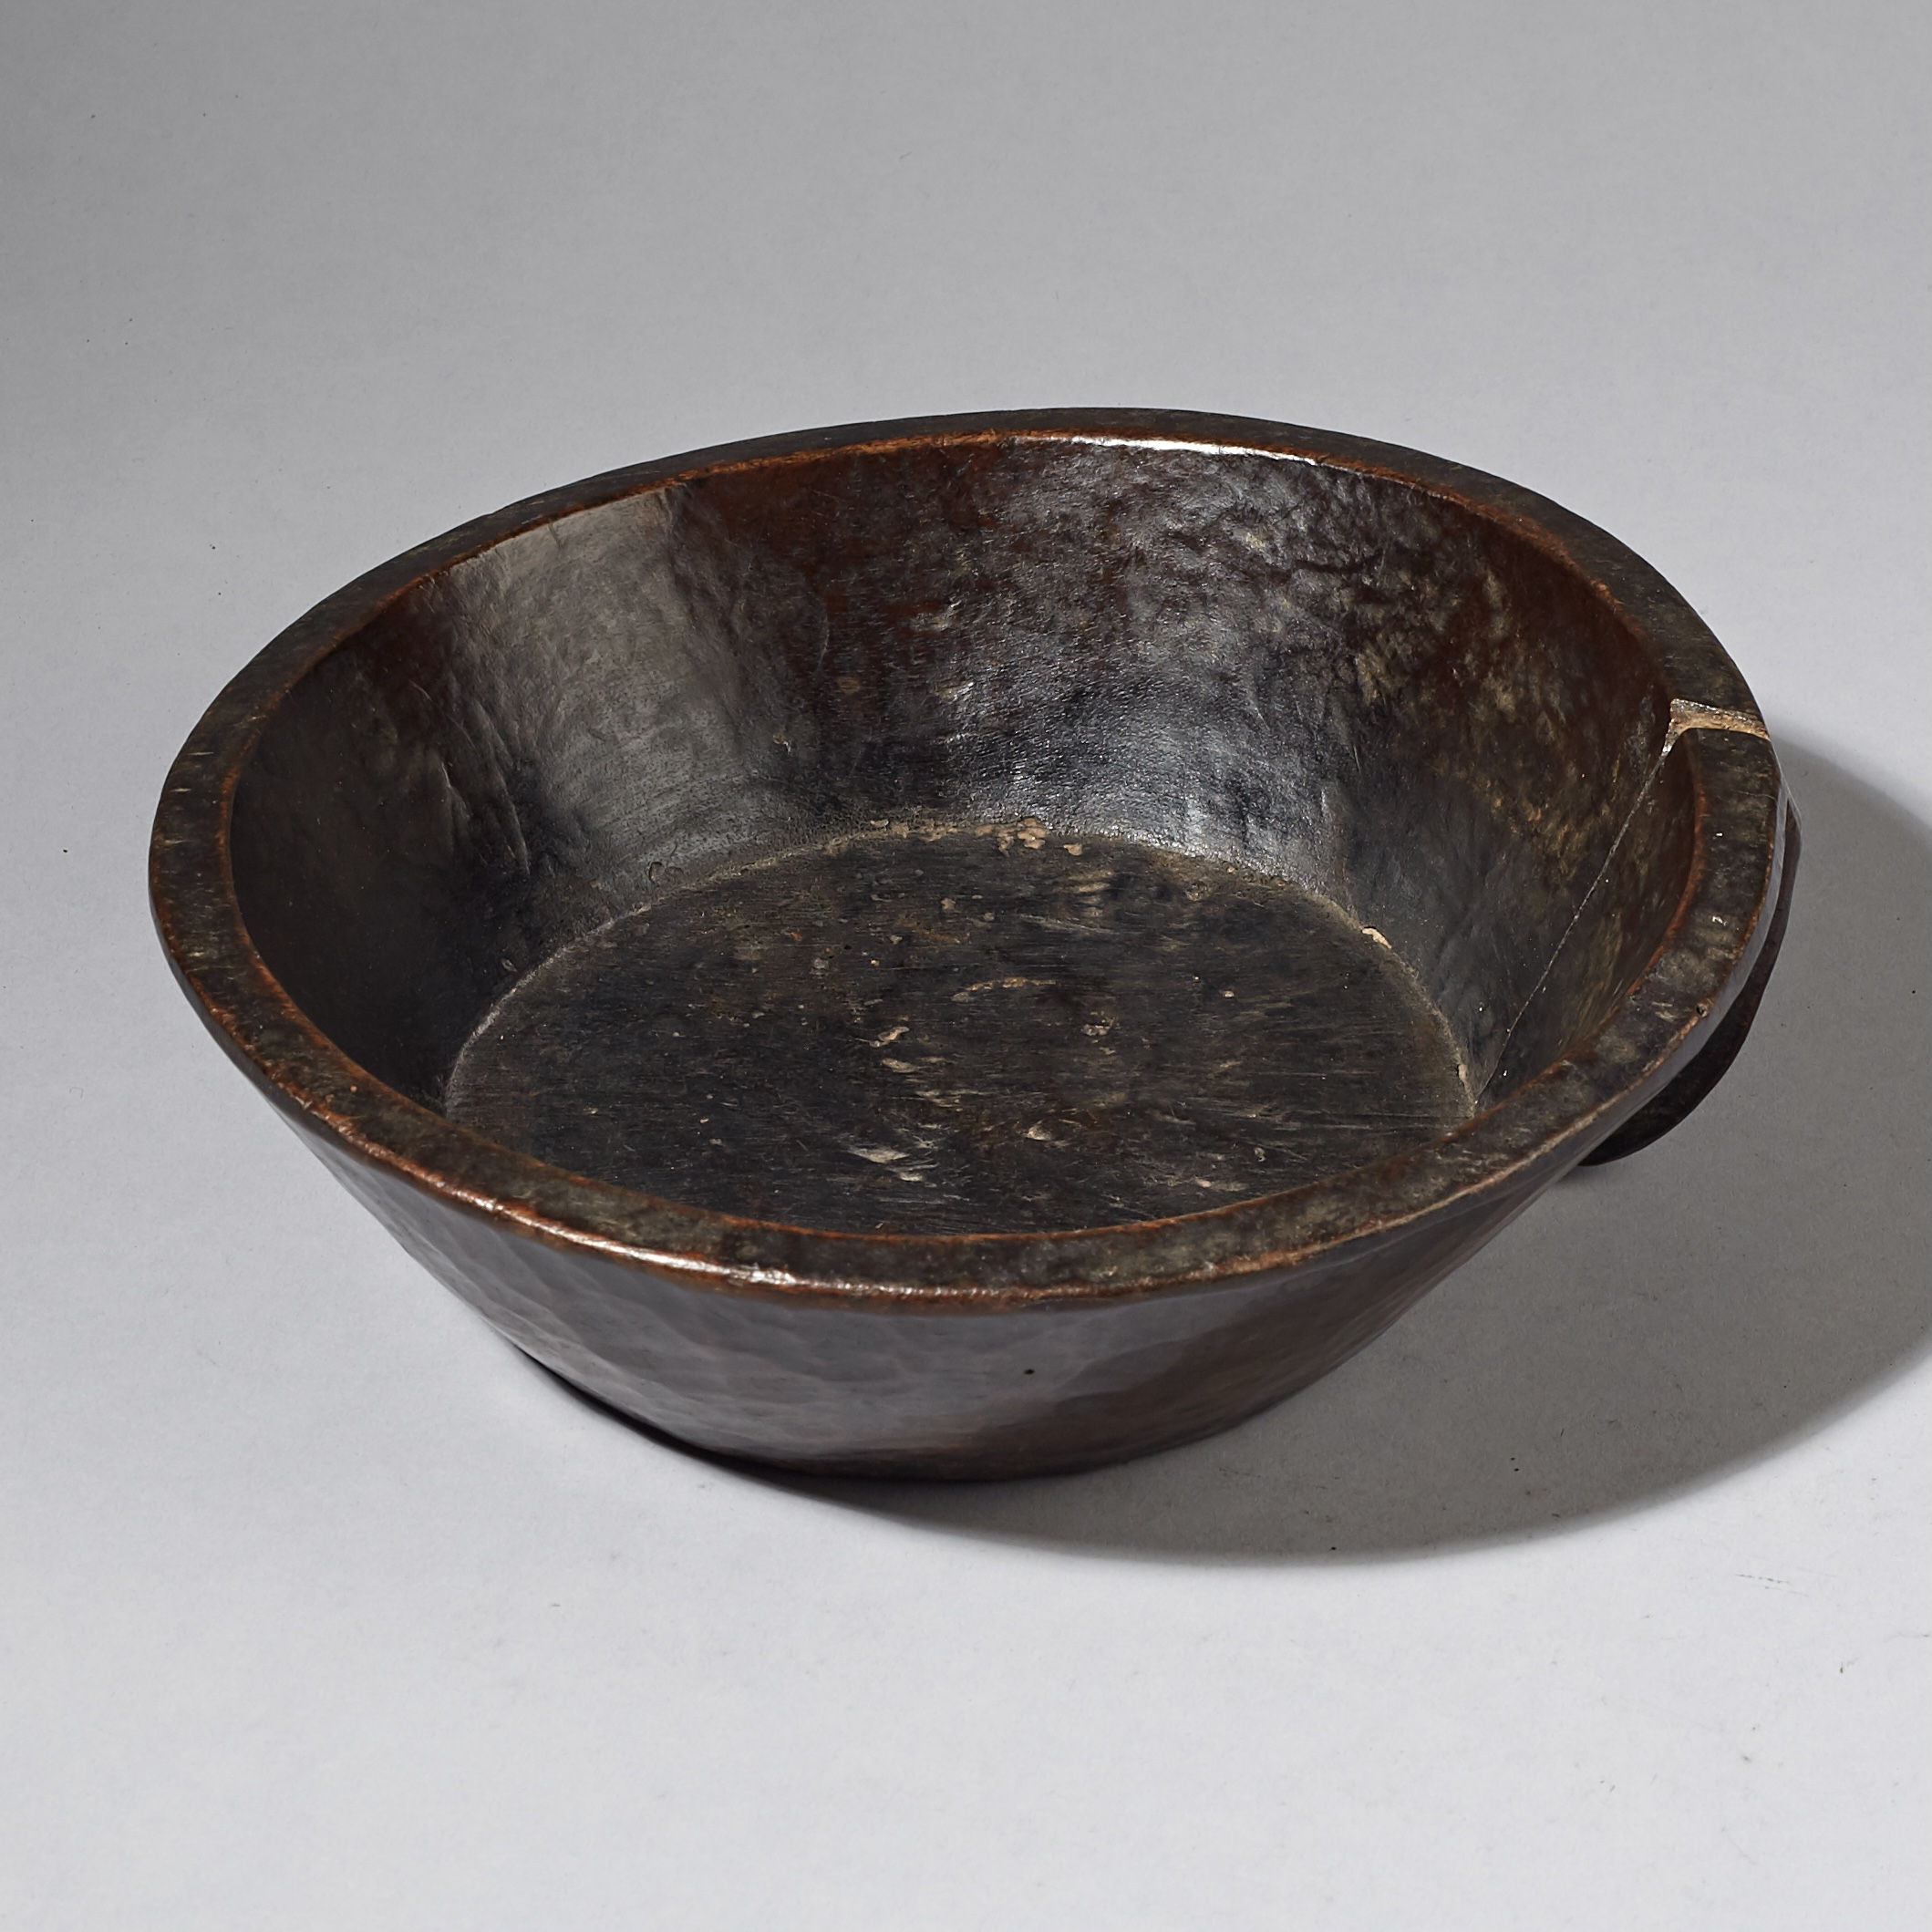 A NICE SMALL SIZED ETHIOPIAN BOWL (  No 2990 )